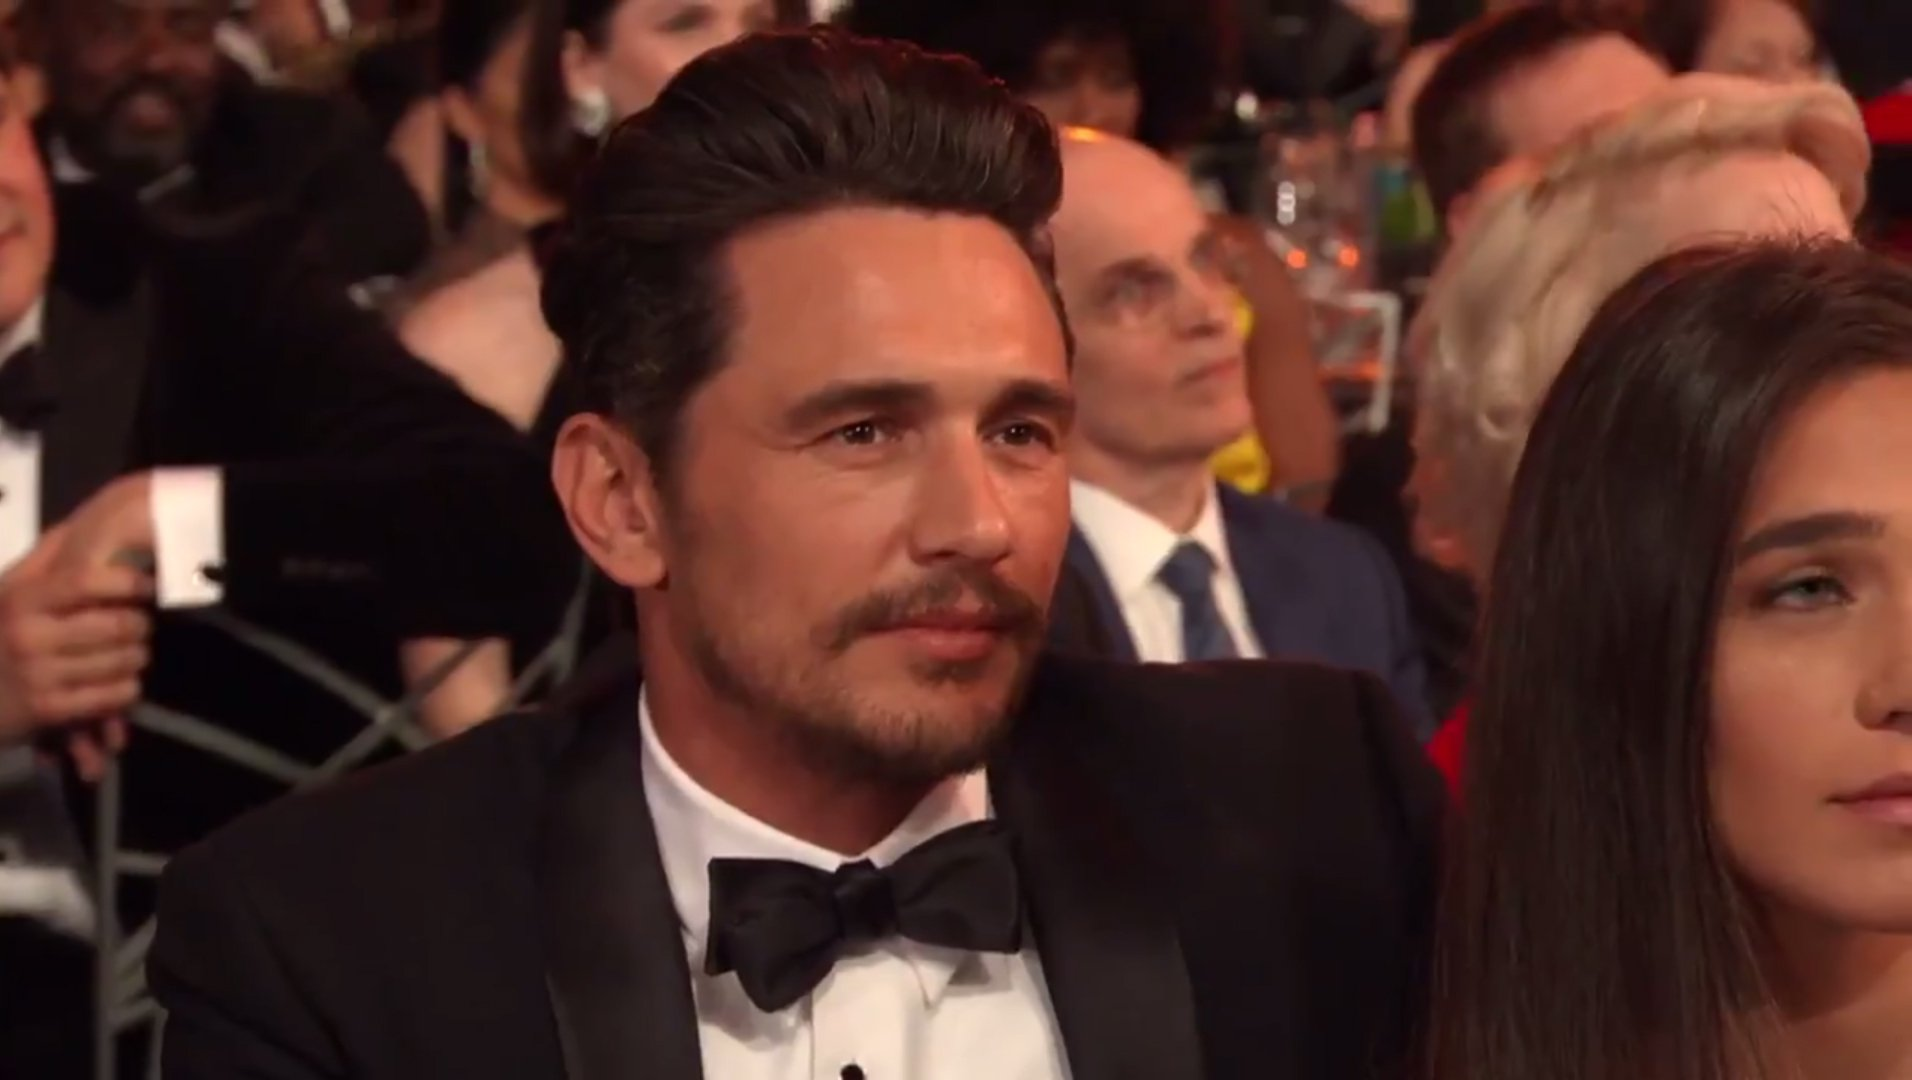 James Franco 'believes he can save his image' following sexual harassment accusations